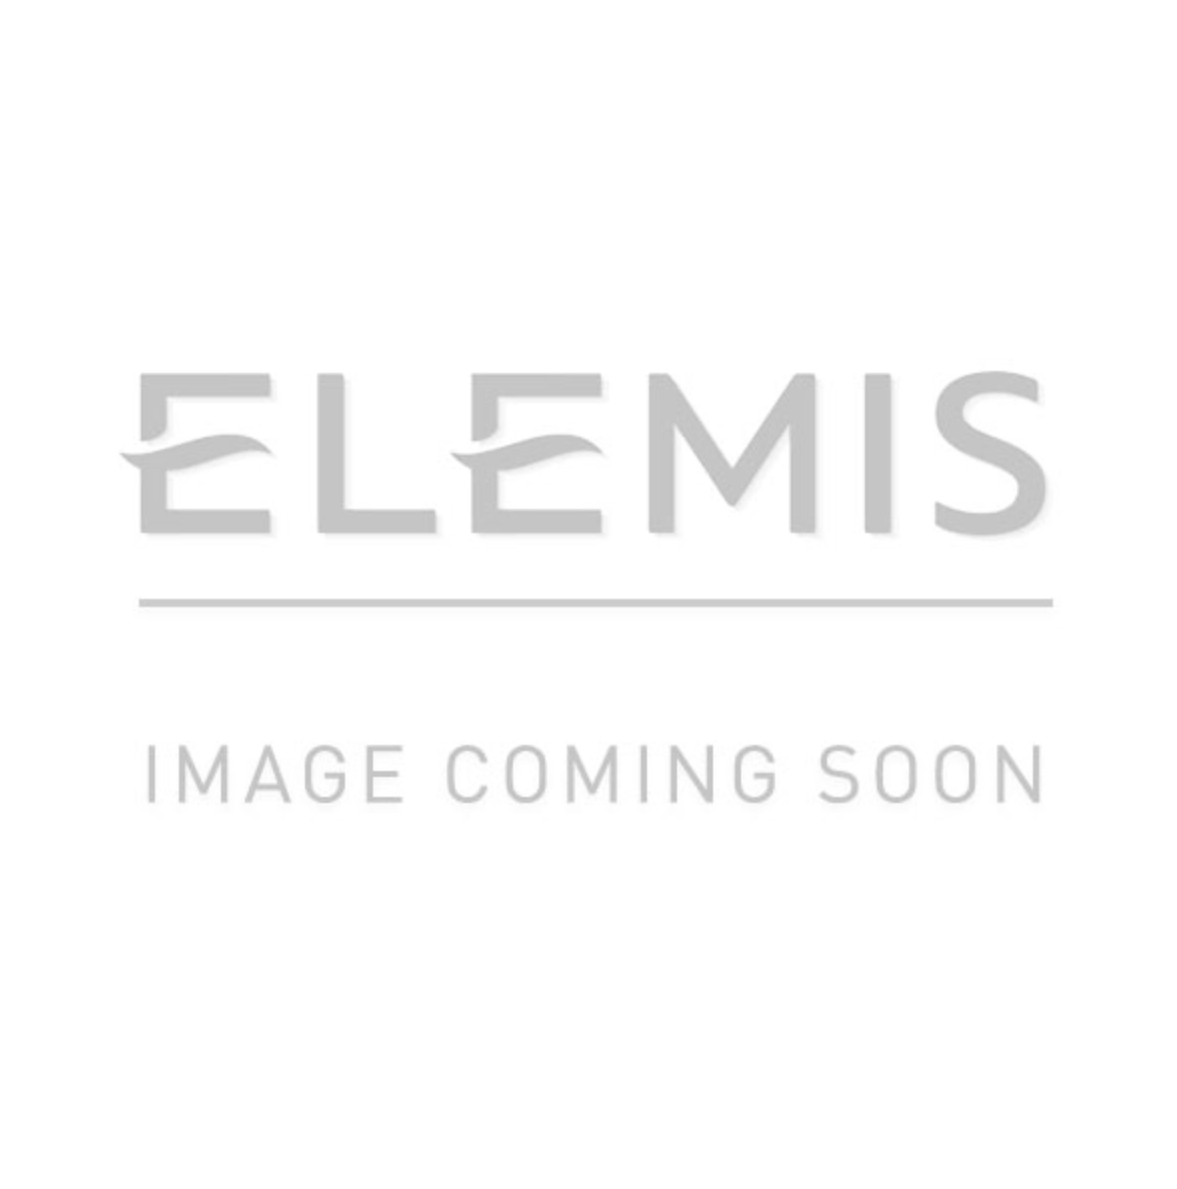 Pro-Collagen Cleansing Balm by Elemis #17